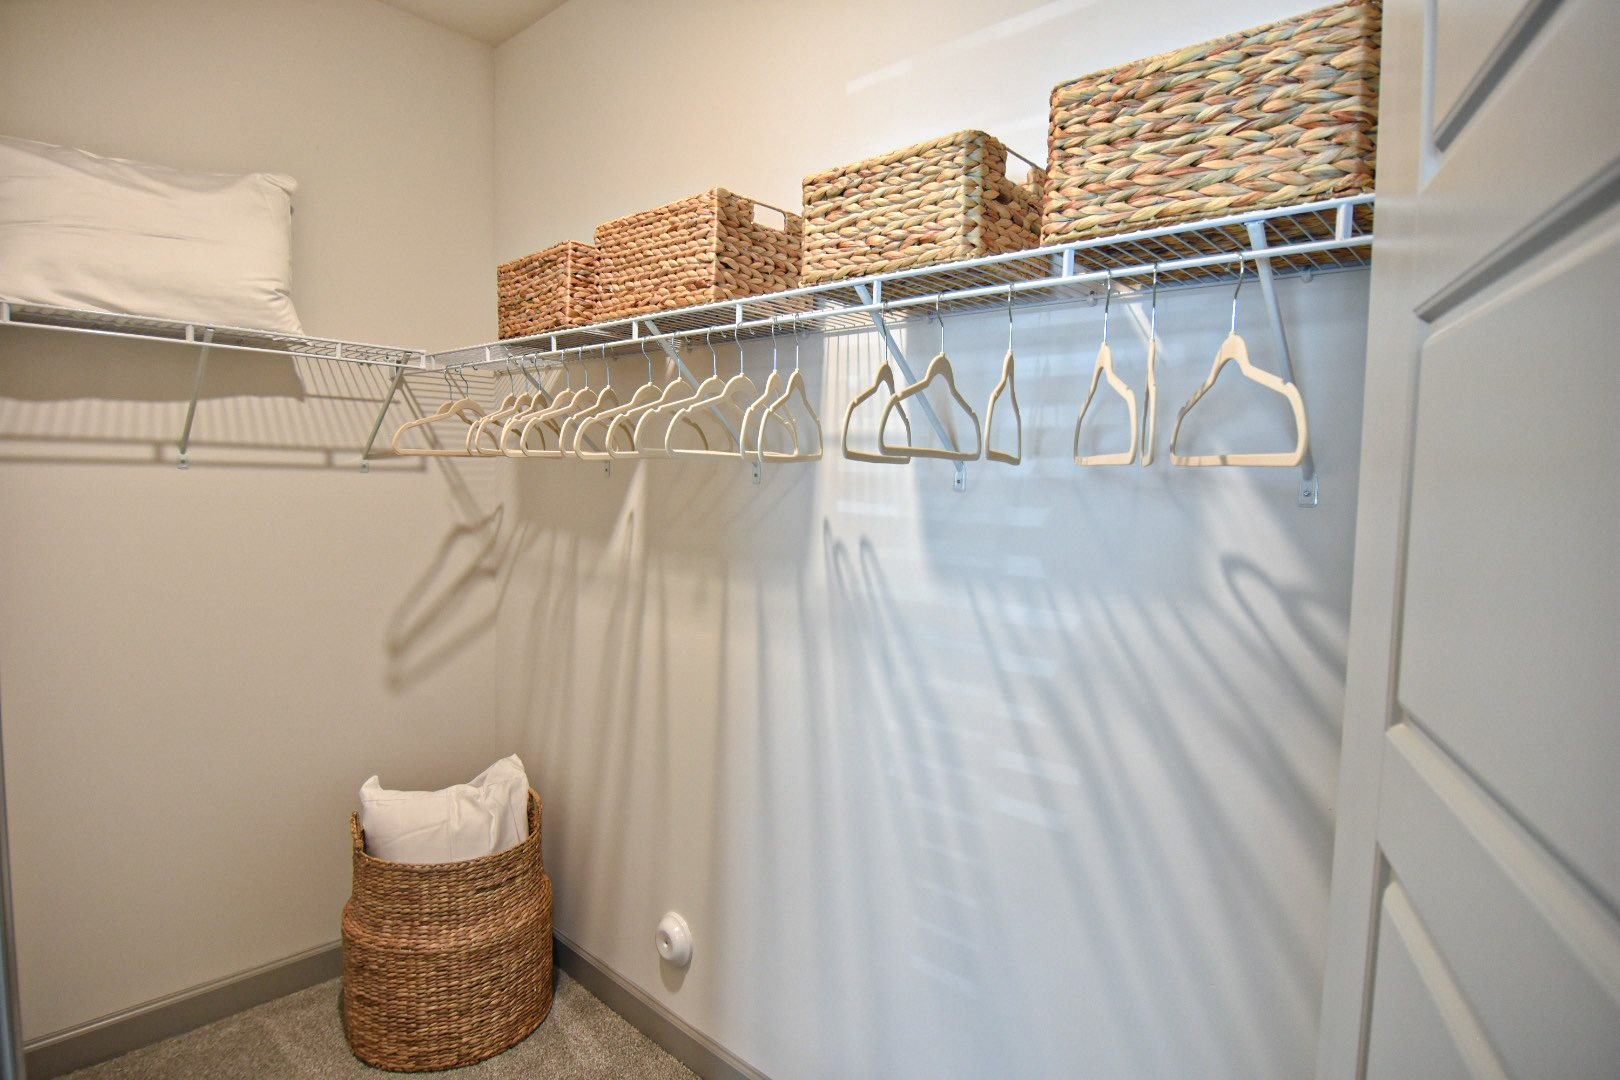 Walk in closet with wicker baskets and felt hangers Hawthorne at Smith Creek